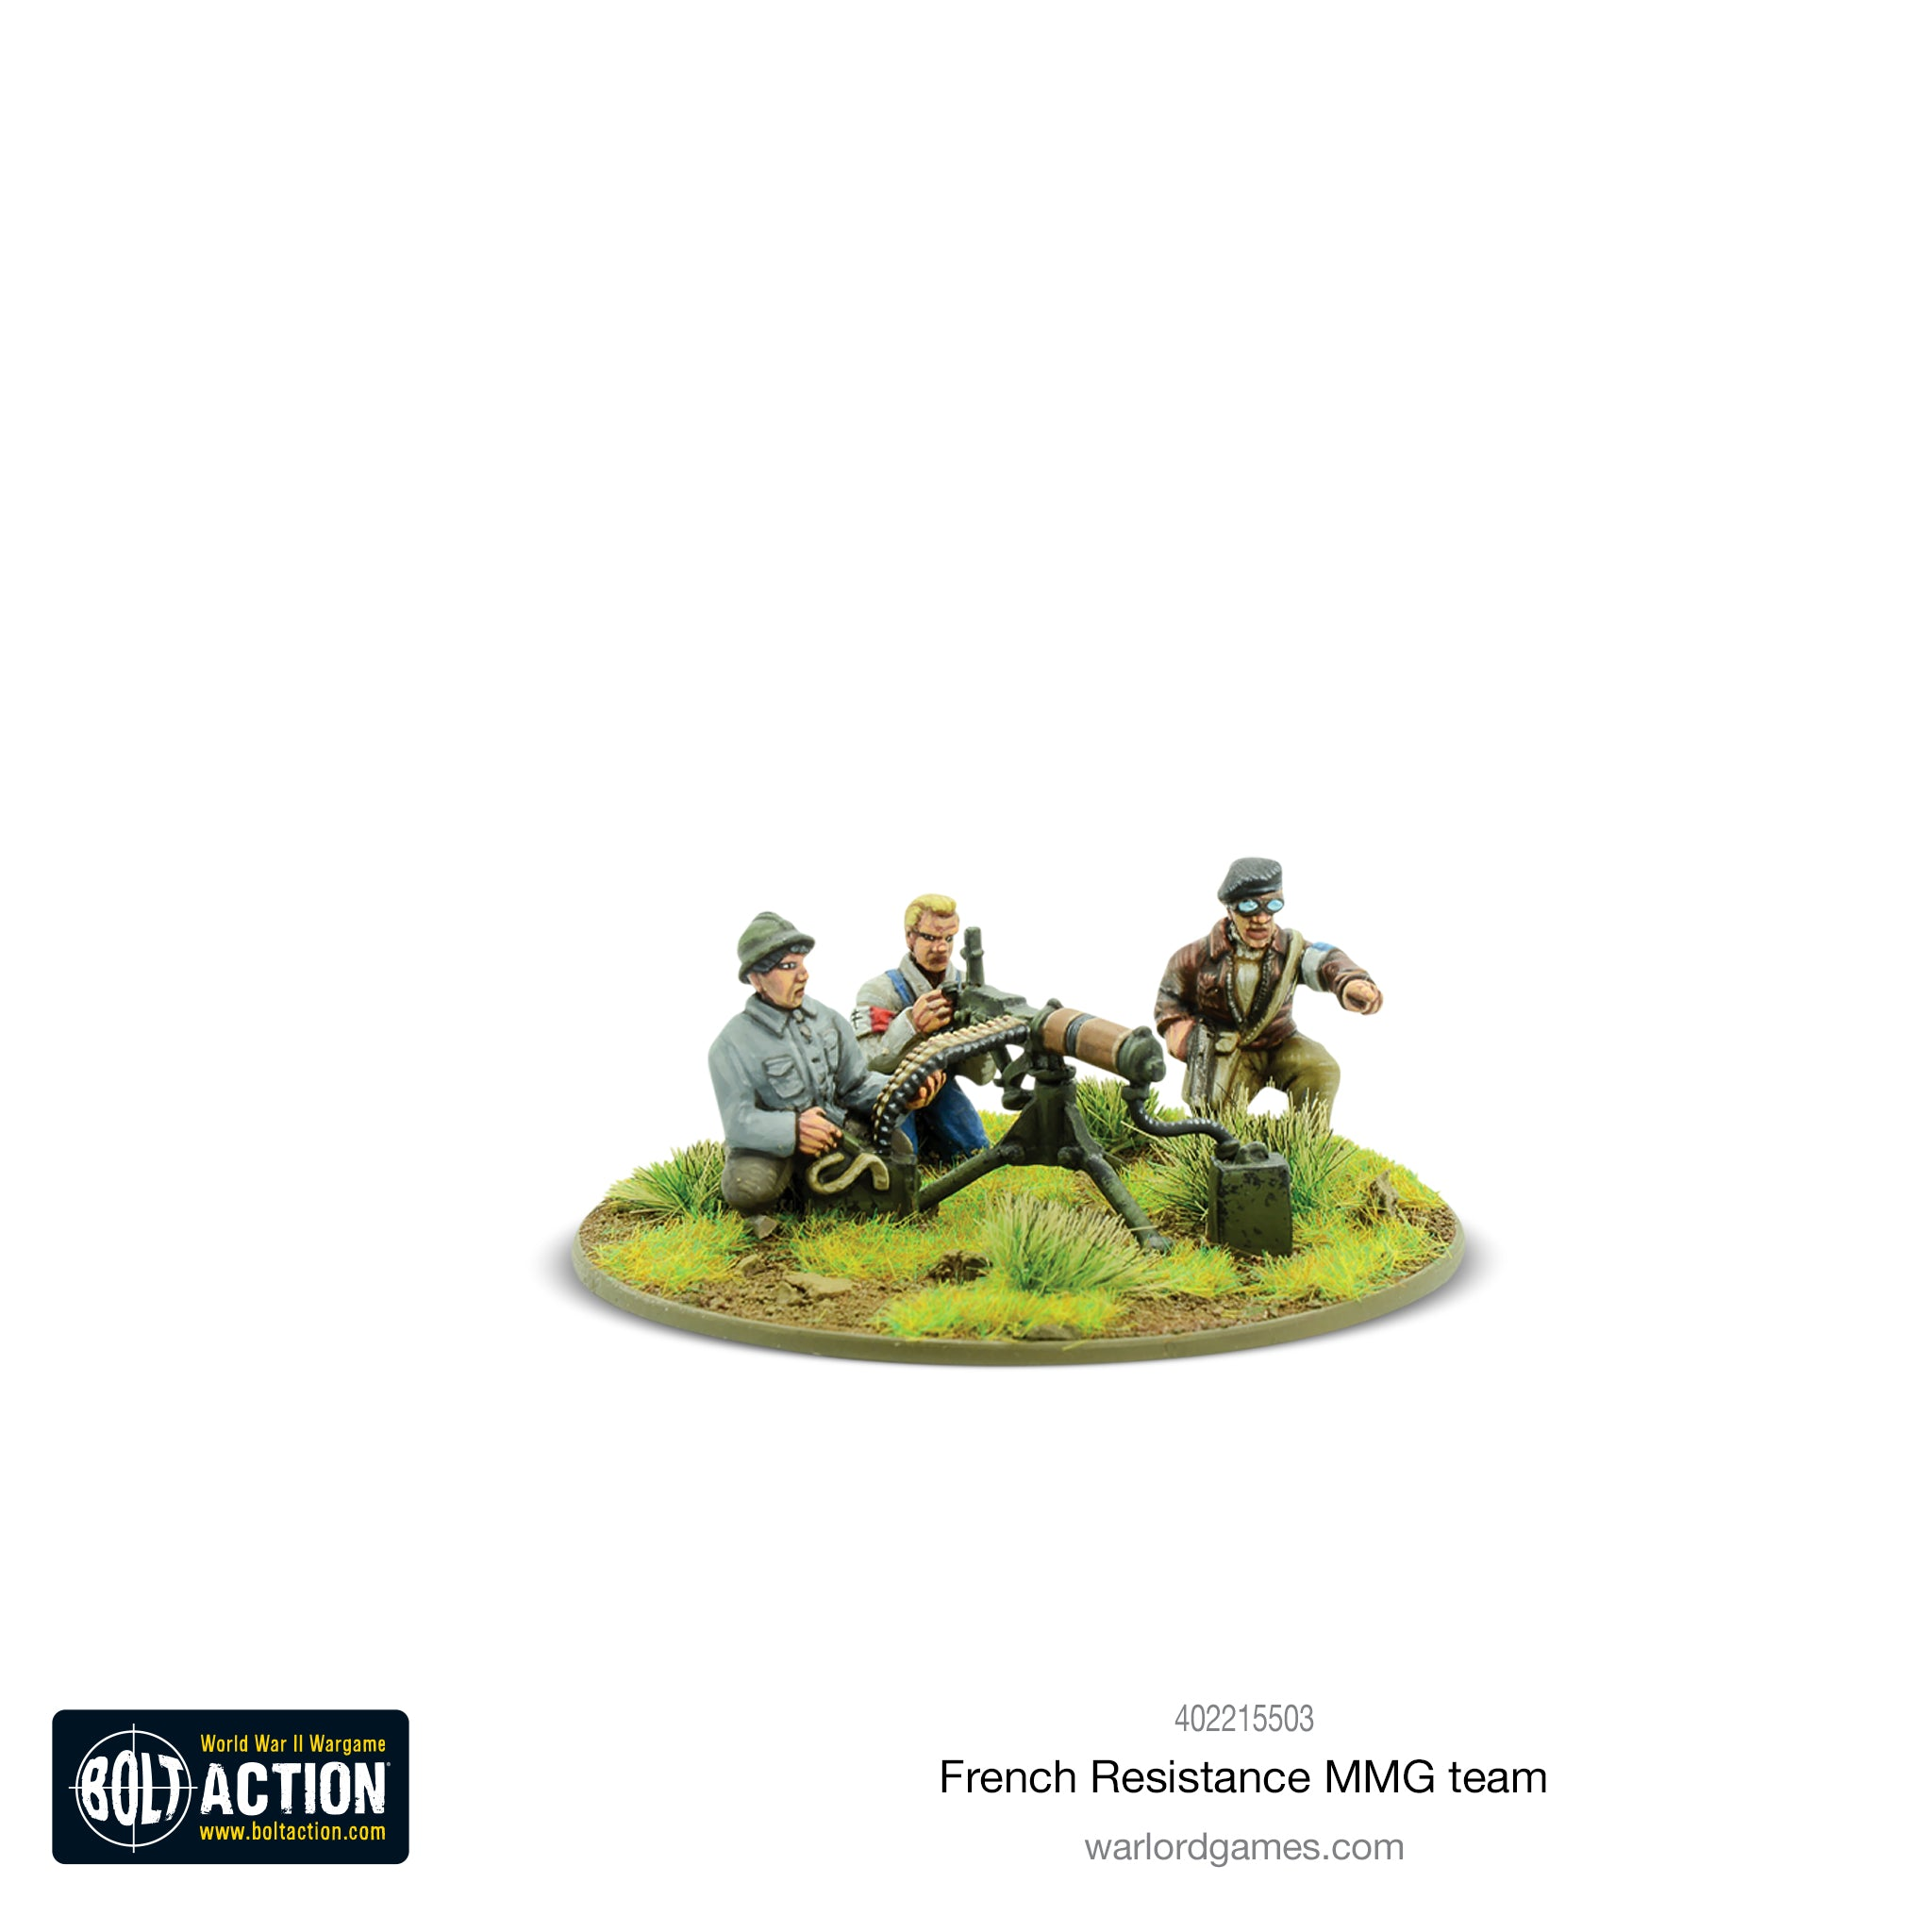 French Resistance MMG team